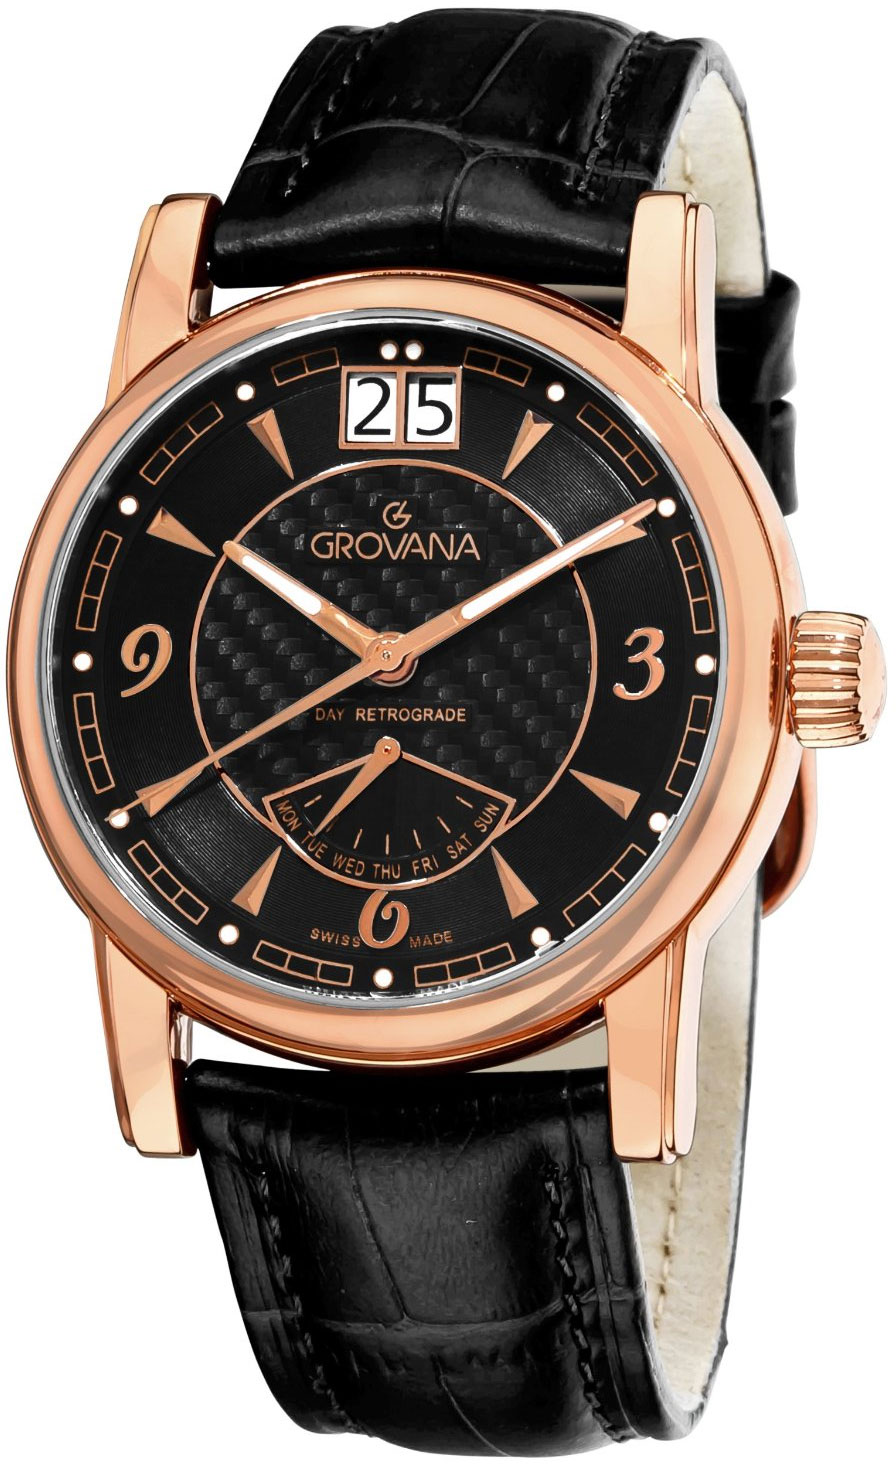 Image of Grovana Day Retrograde Mens Watch Model 1721.1567